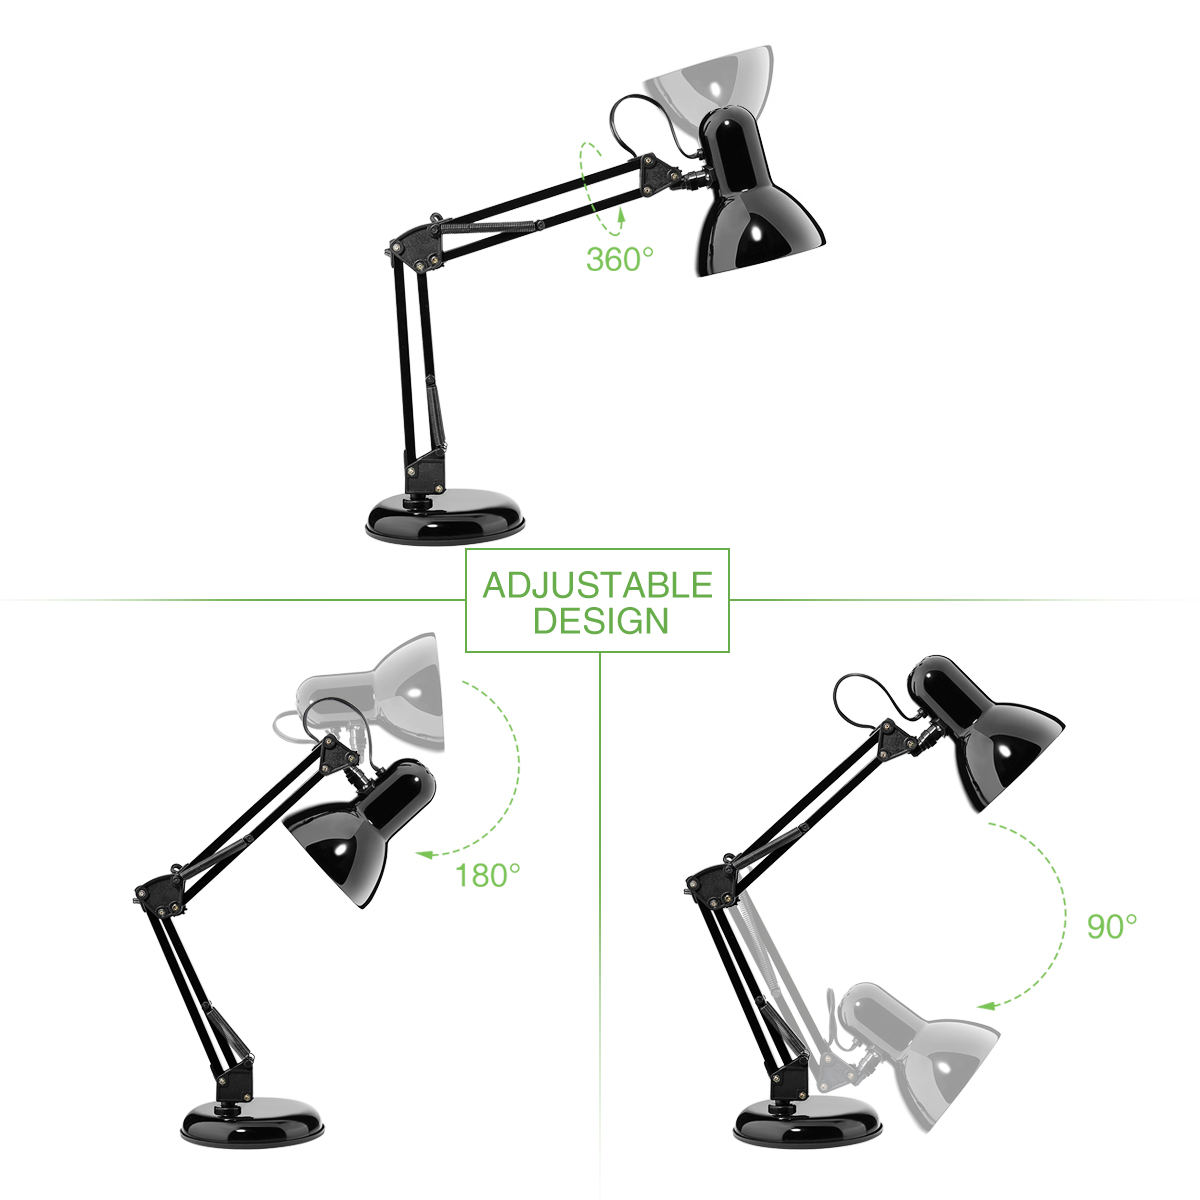 Swing Arm Desk Lamp C Clamp Table Lamp Flexible Arm